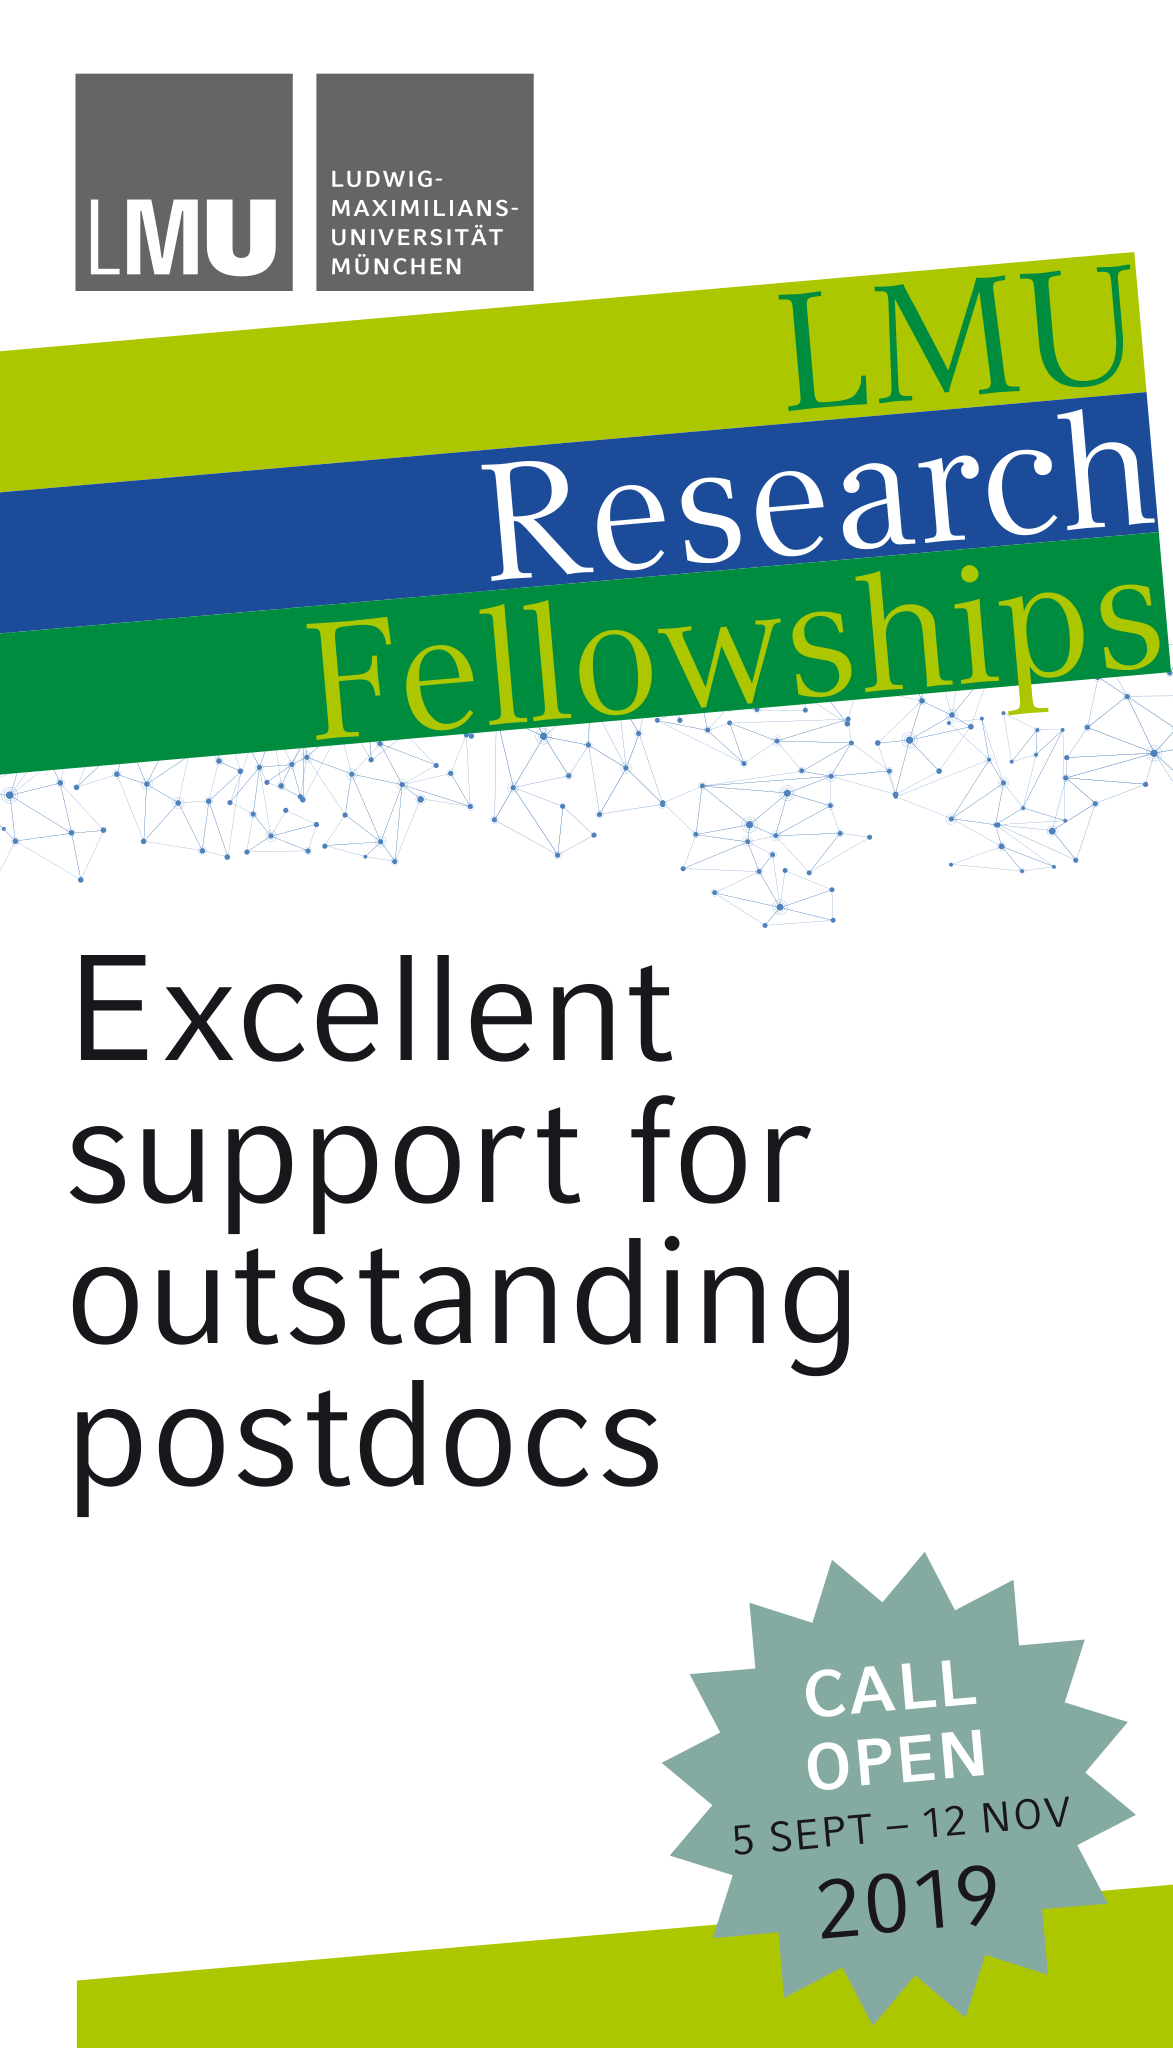 Postdoc research fellowships in Germany (LMU) in all fields of knowledge (incoming / outgoing) 2020